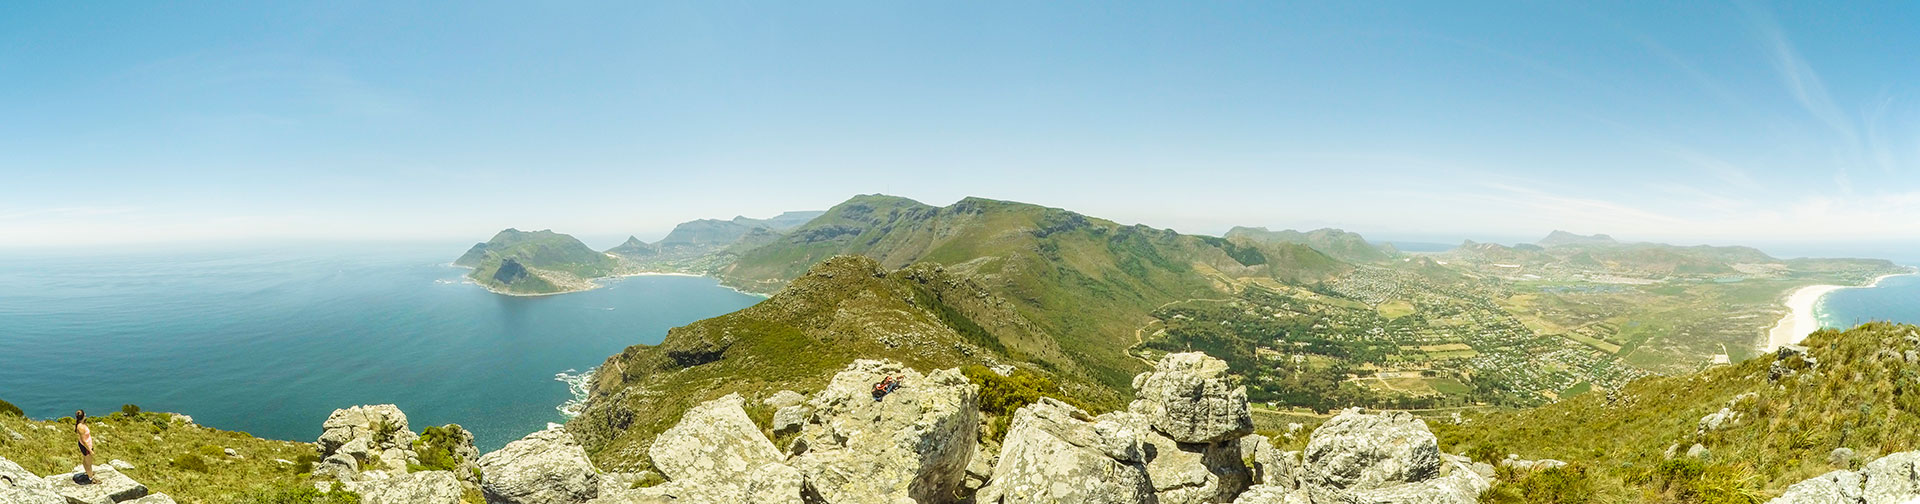 The spectacular 360 degree view from Chapman's Peak.  Credit: Cameron Watson